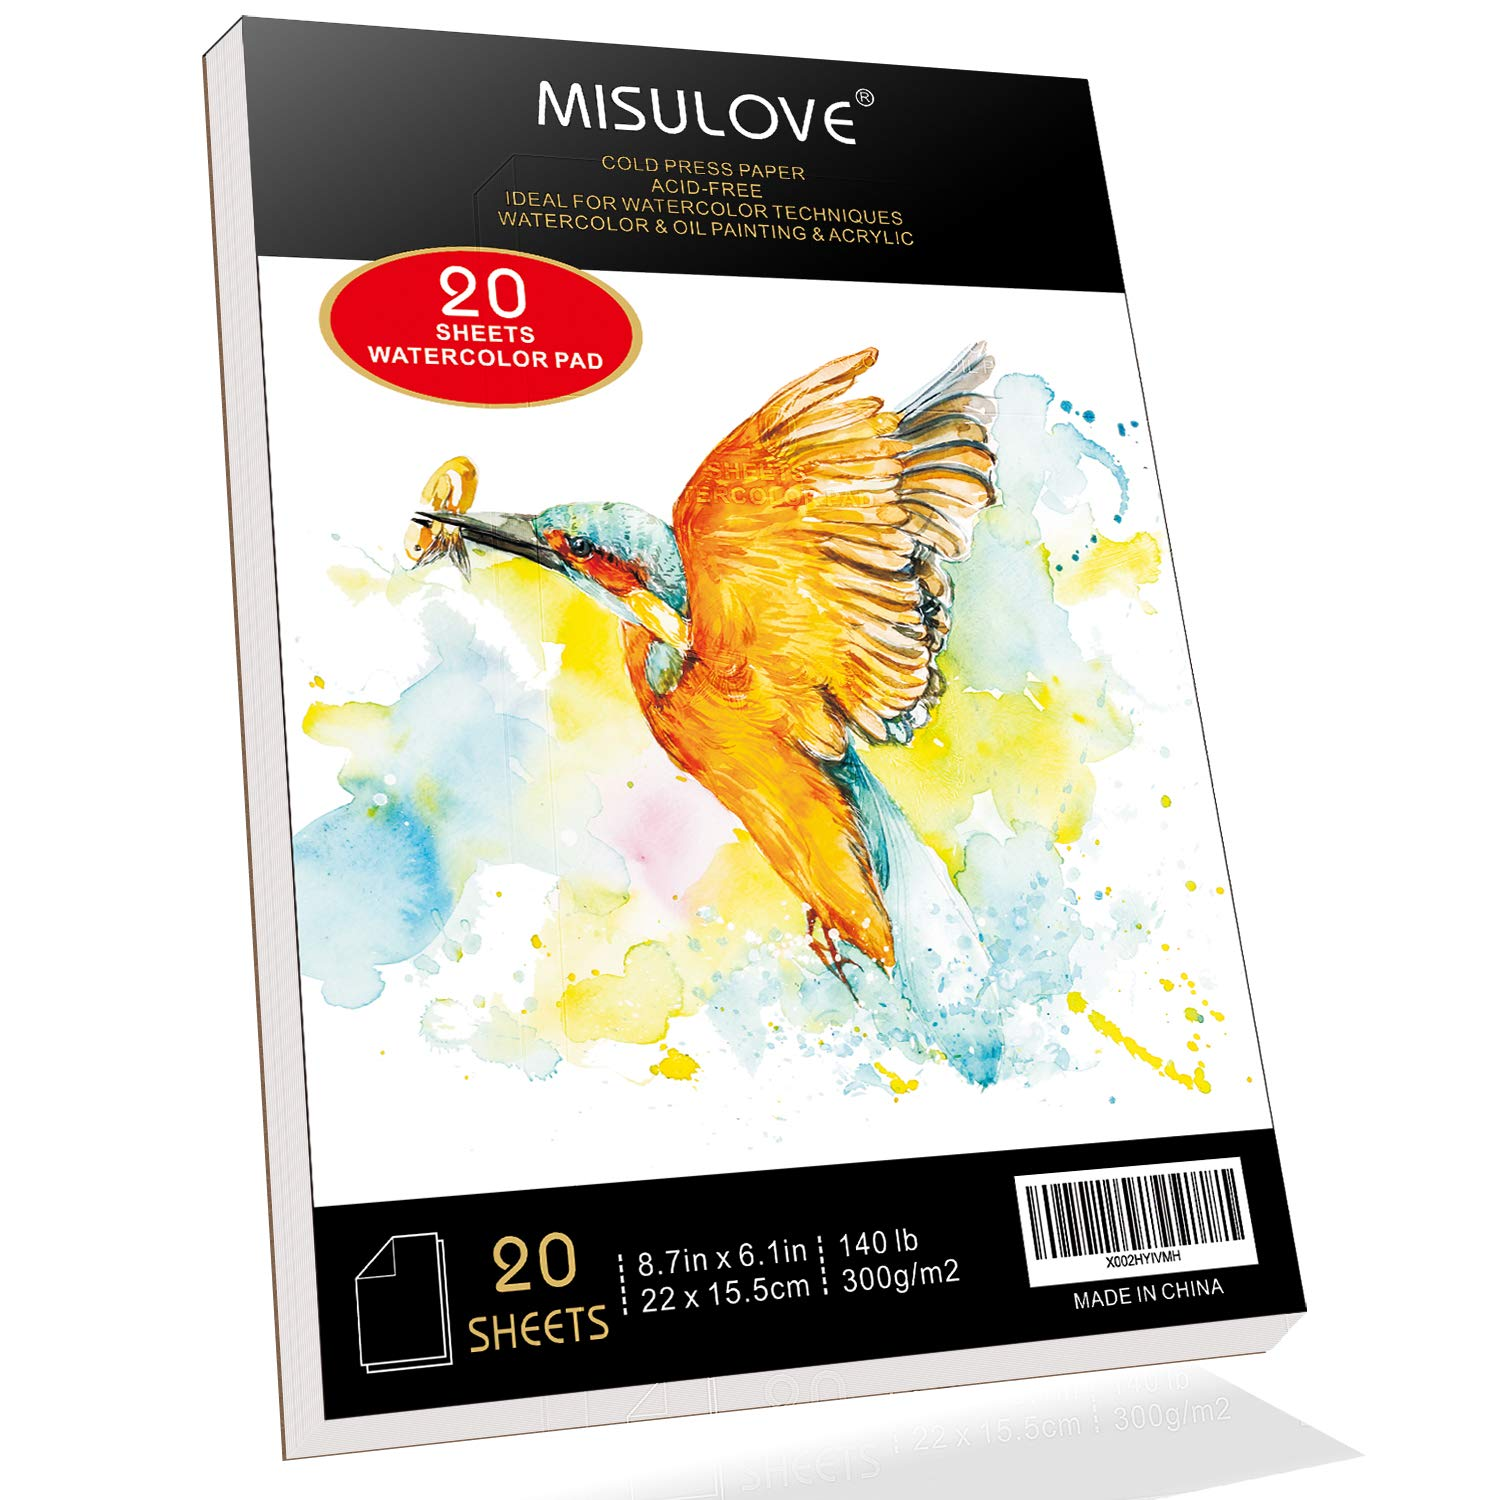 """MISULOVE 6.1X8.7"""" Watercolor Paper Pad, Cold-Pressed, Acid-Free, Ideal for Watercolor Painting and Wet Media, Textured Paper Great and Sketchbook, Art Paper for Kid, 20 White Sheets (140lb/300gsm)"""